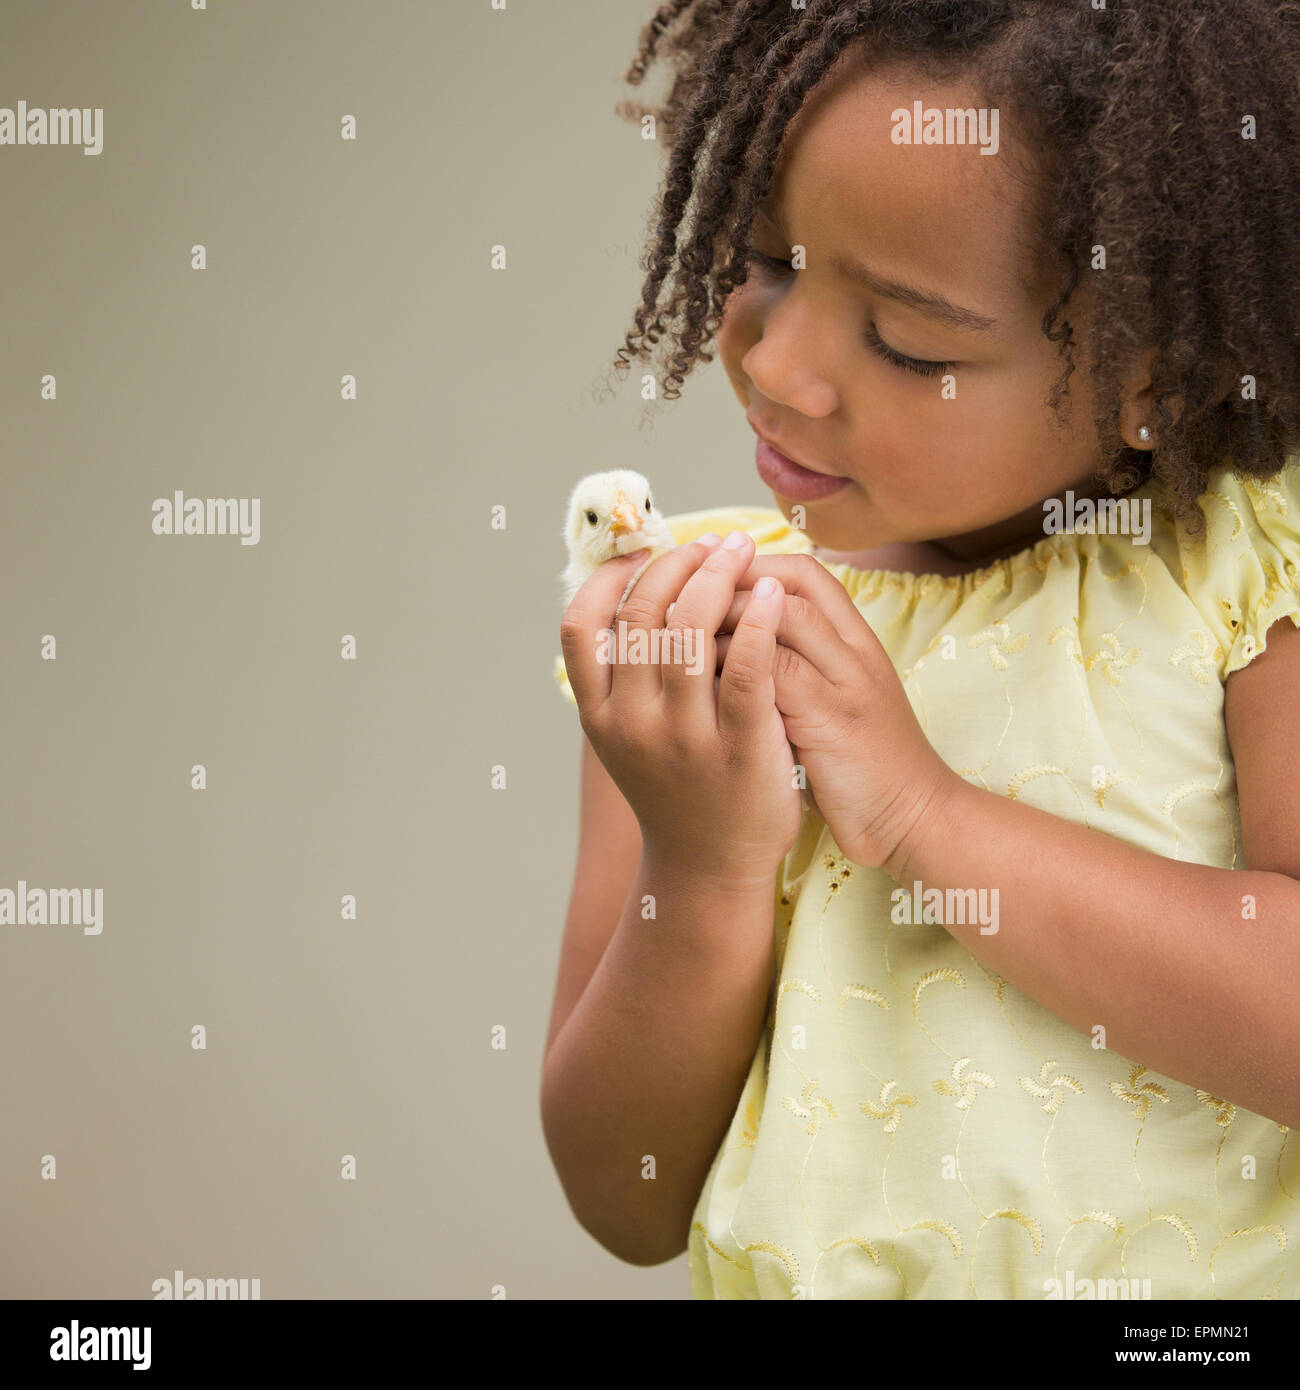 A girl holding a baby chick. - Stock Image